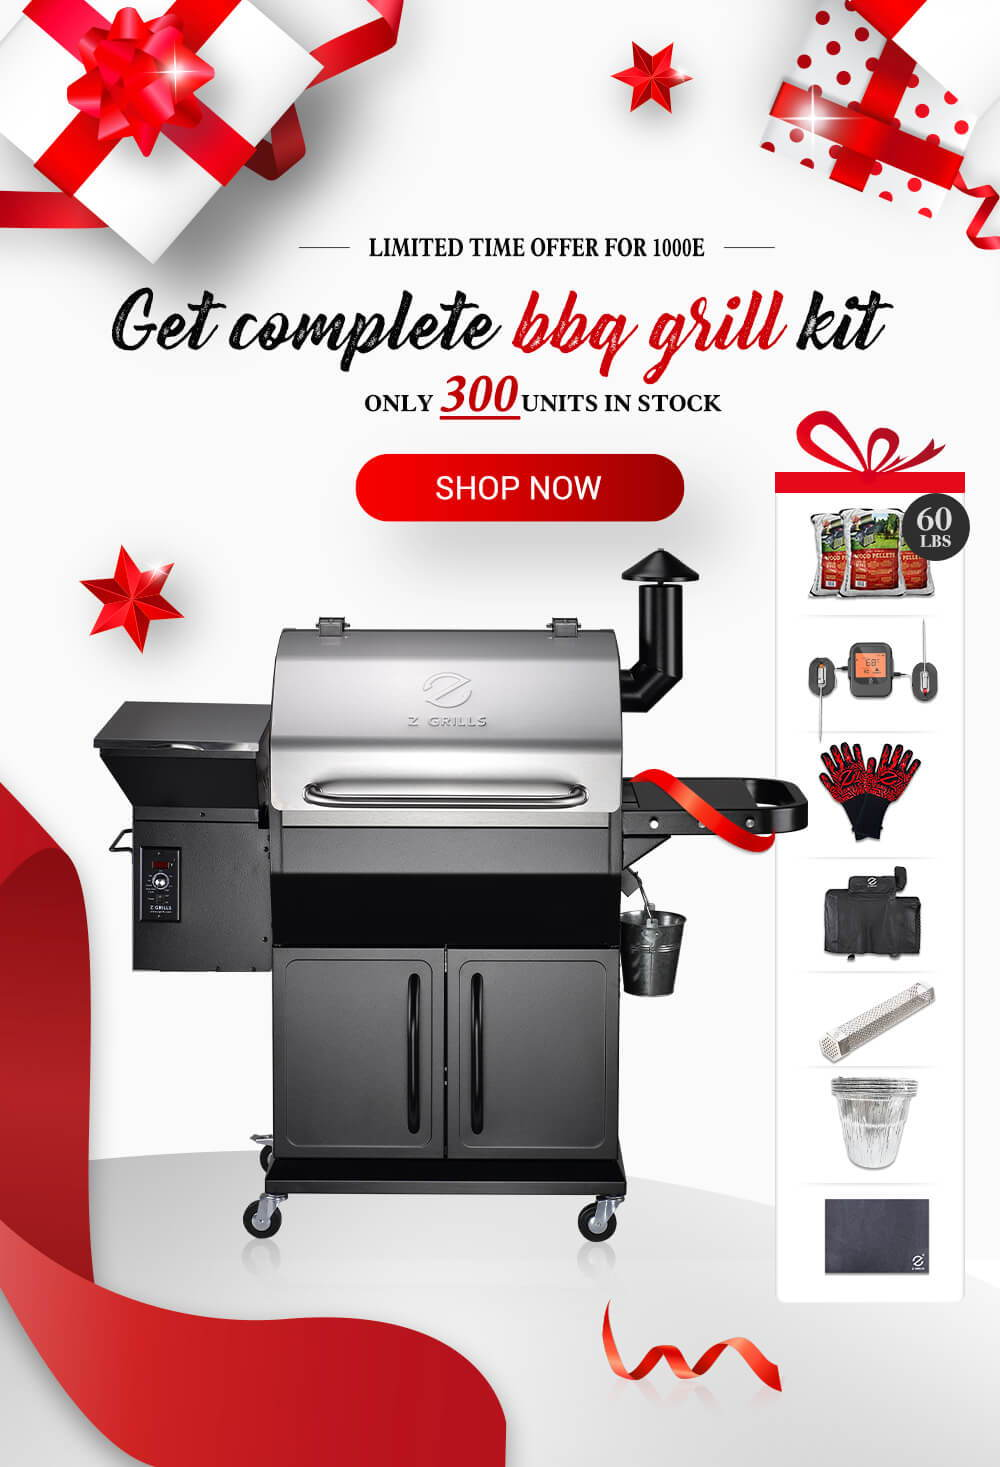 Z Grills 1000E Falsh Sale